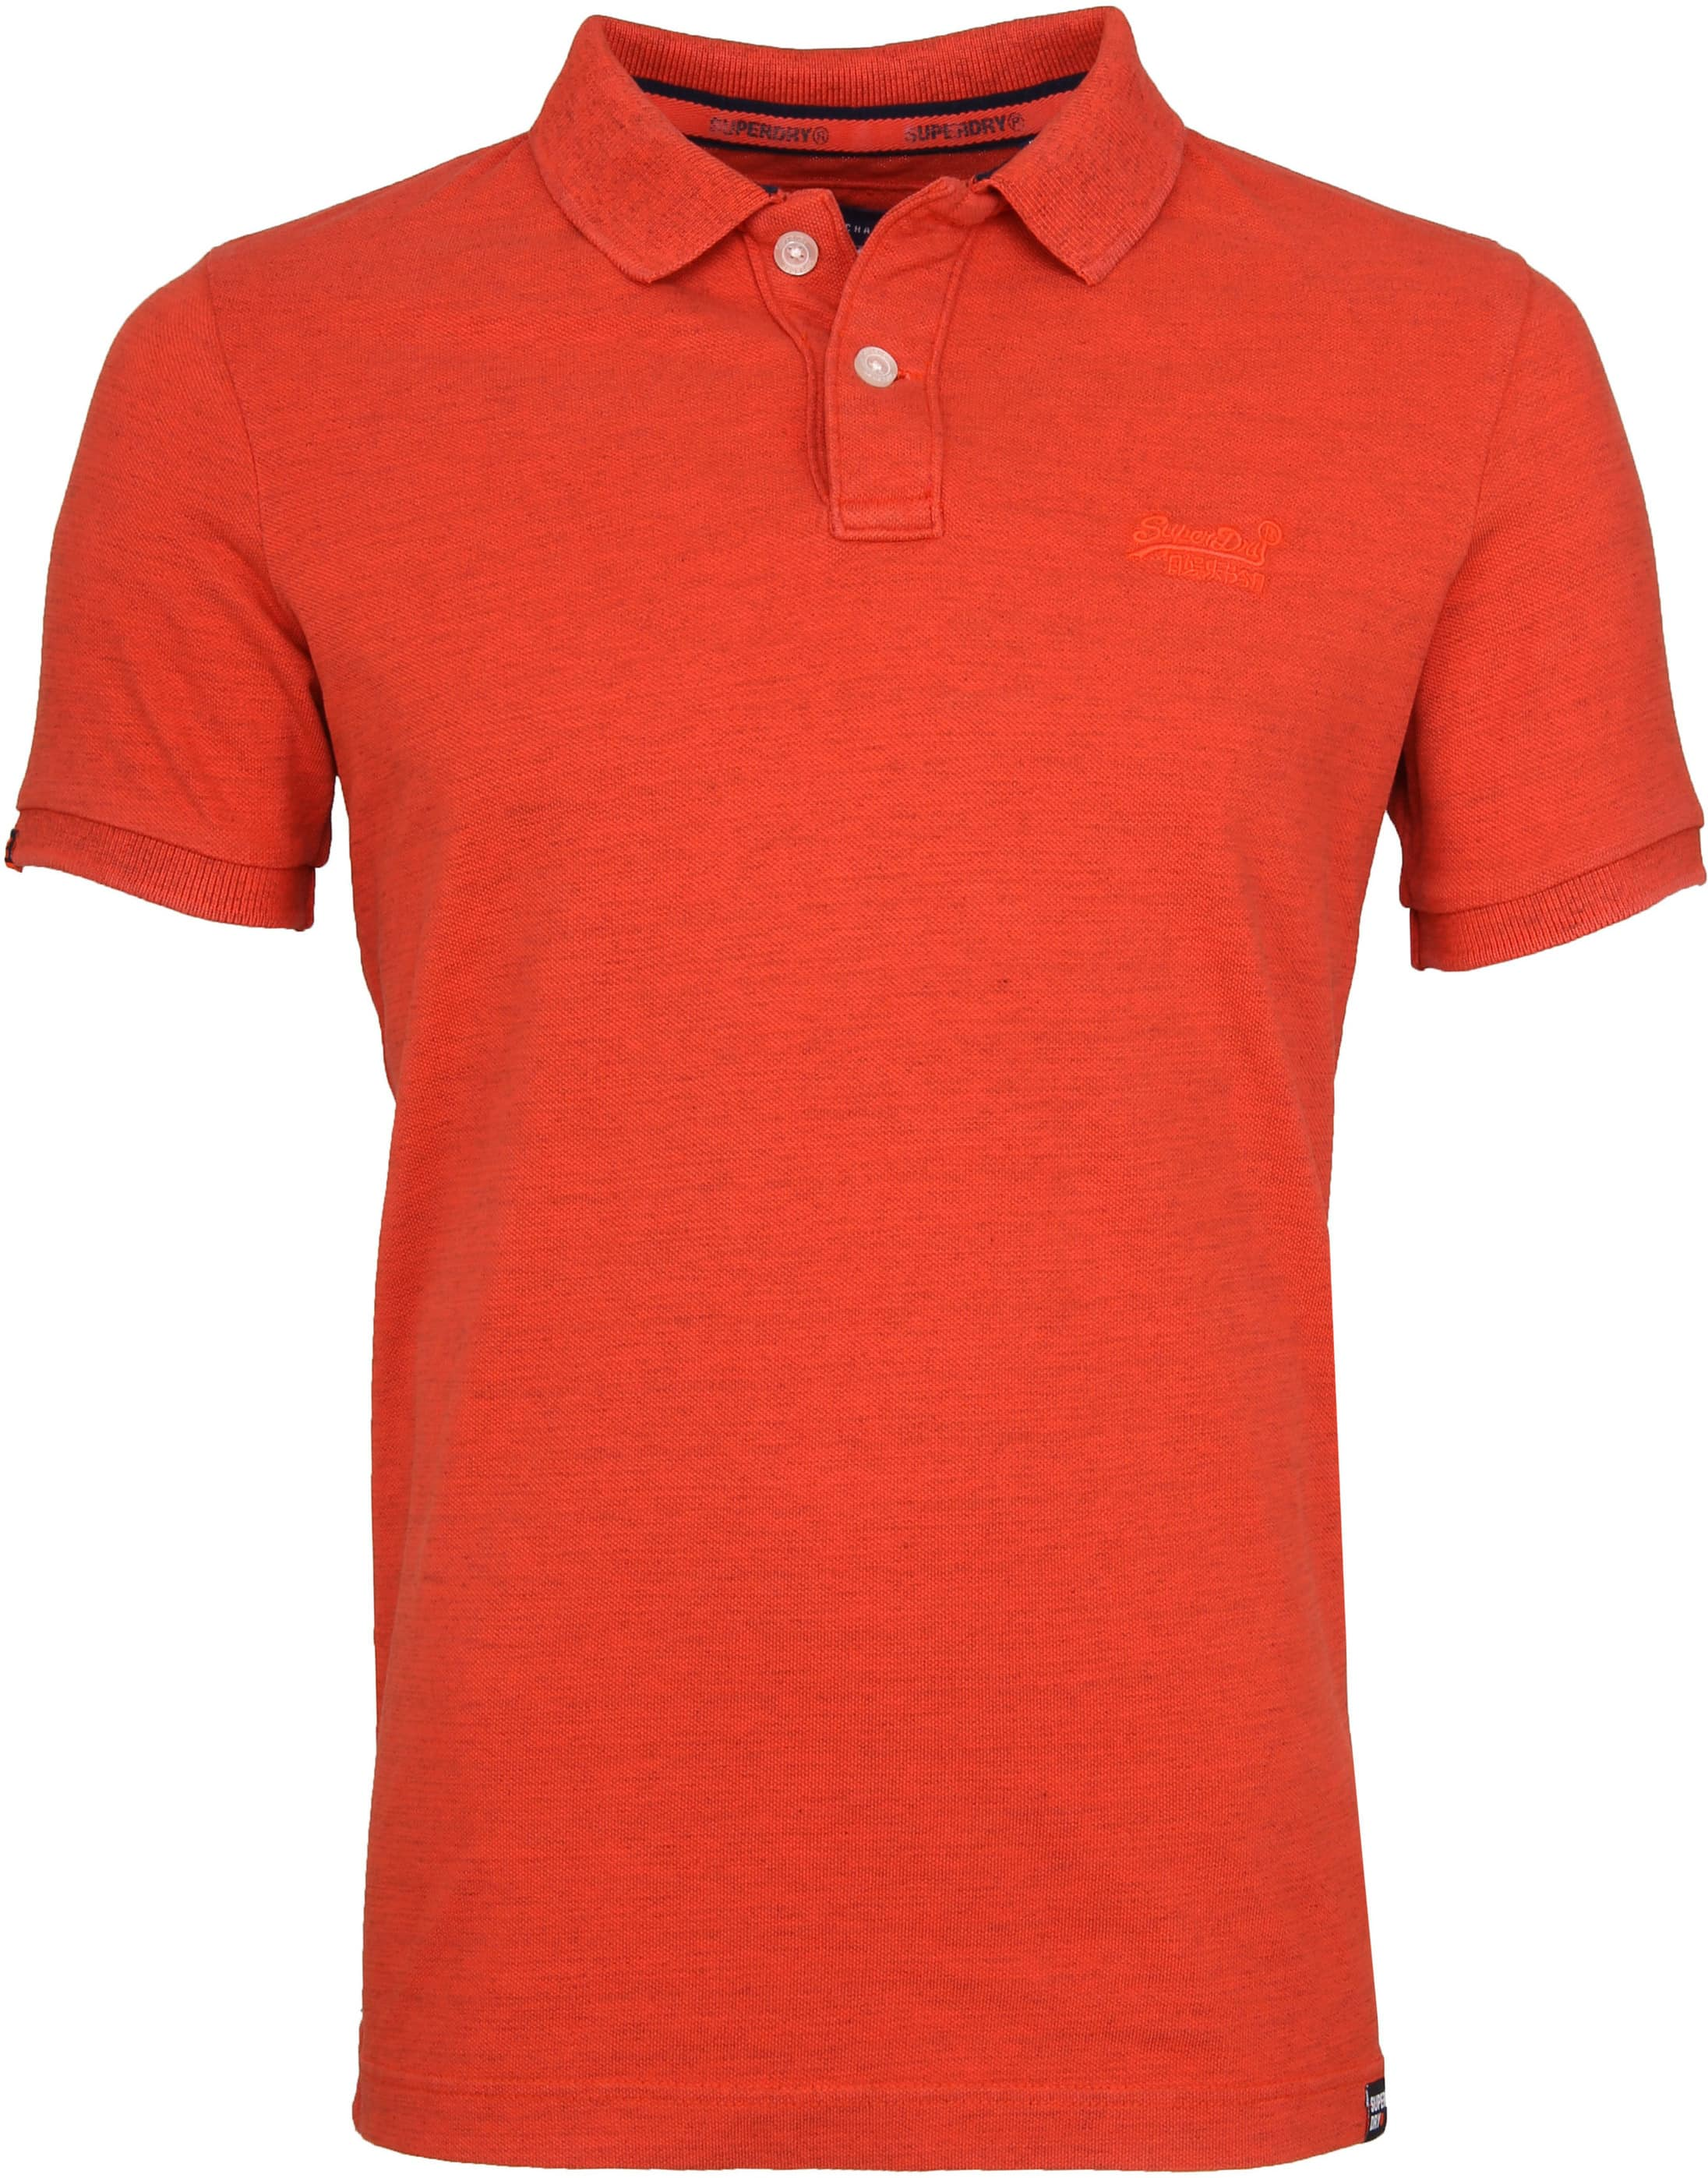 Superdry Premium Poloshirt Orange foto 0